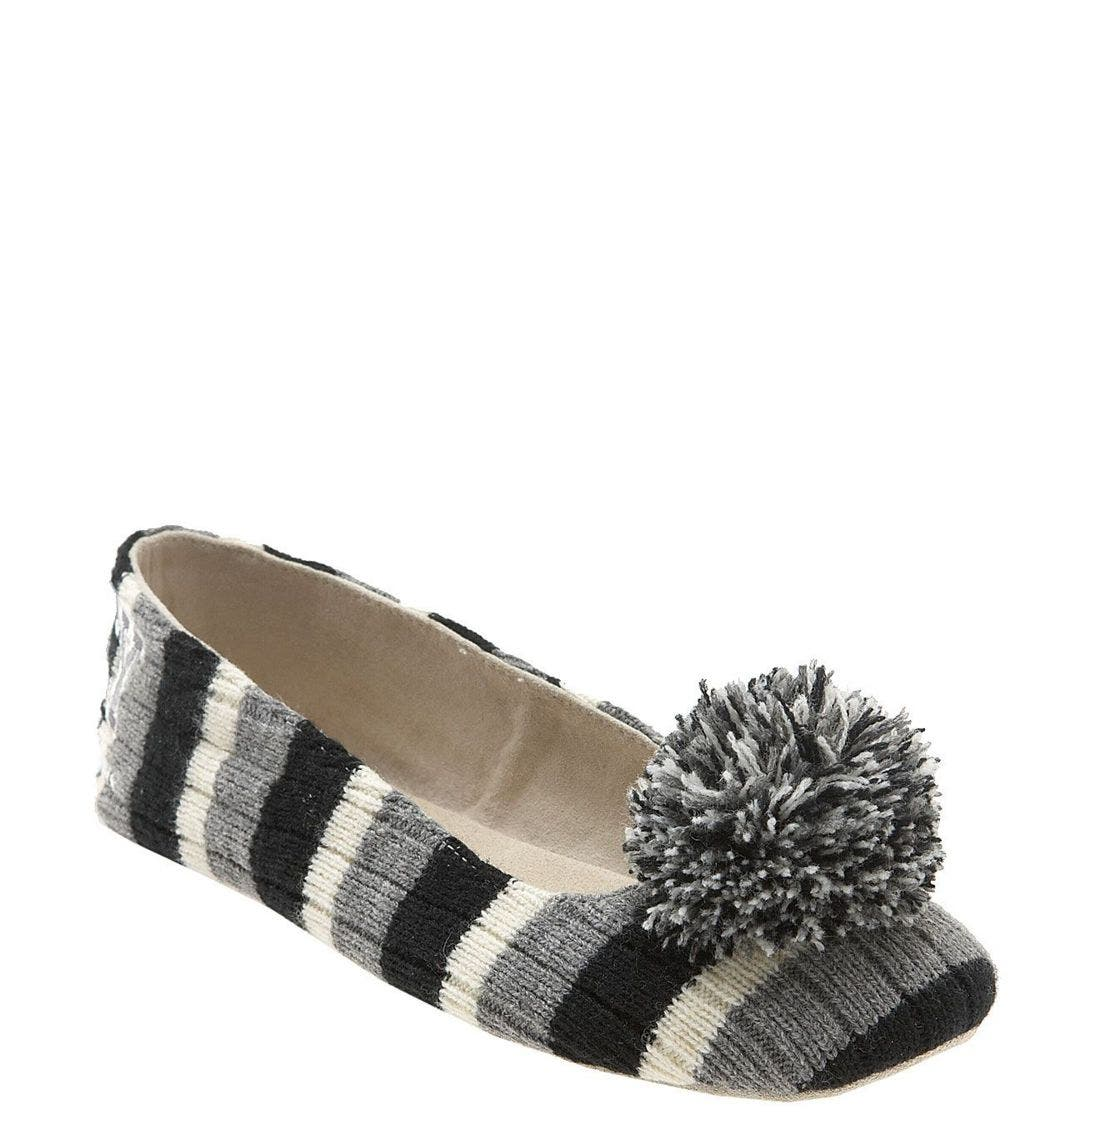 Alternate Image 1 Selected - Juicy Couture 'Cheer' Flat